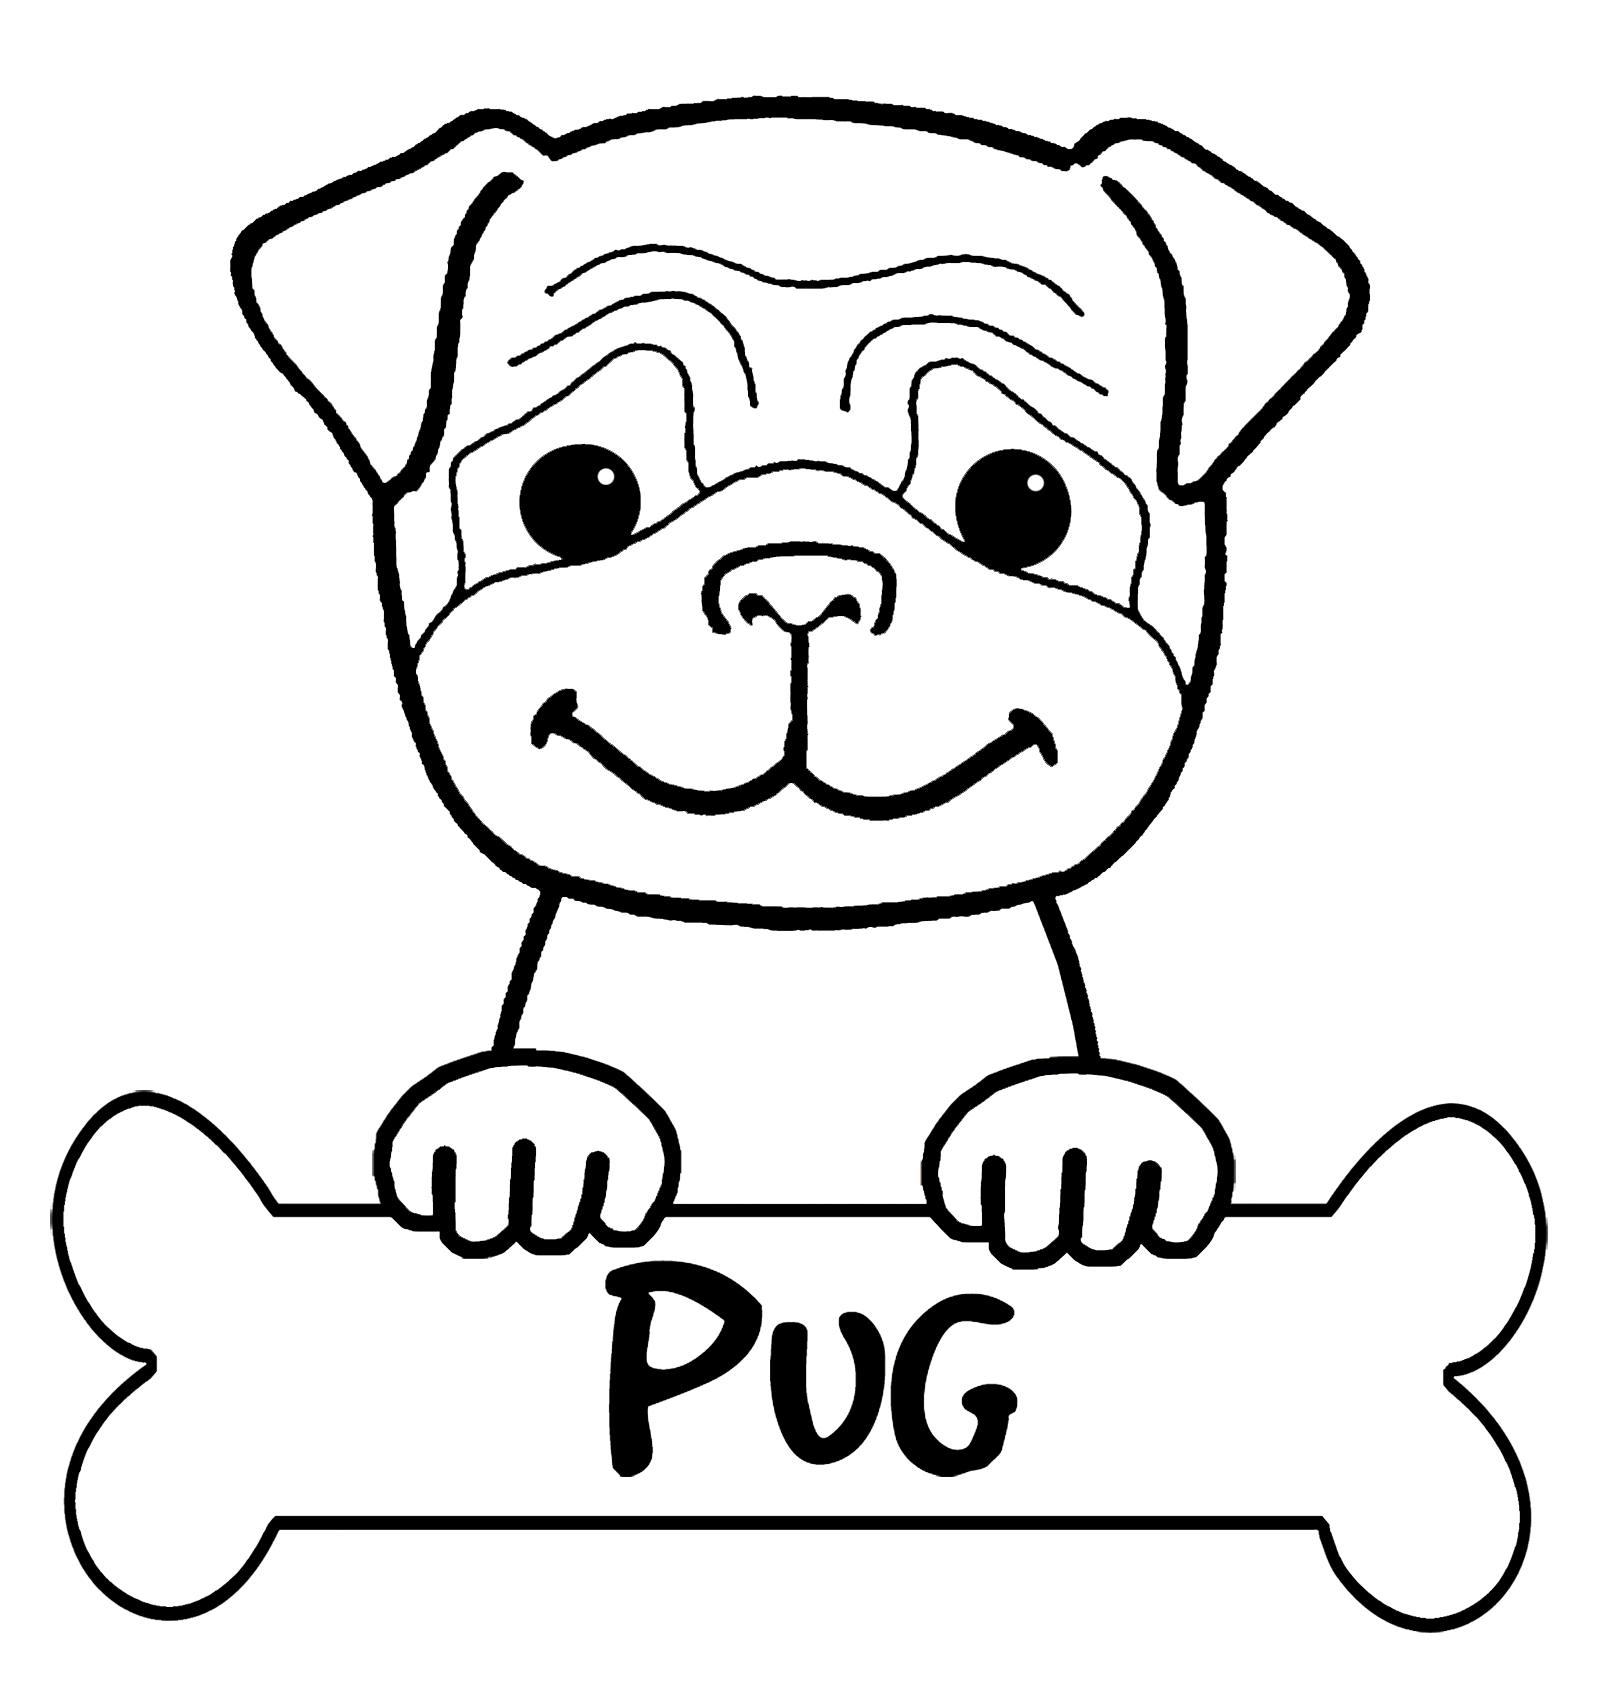 Cute Puppy Coloring Pages   Click On A Coloring Page Below